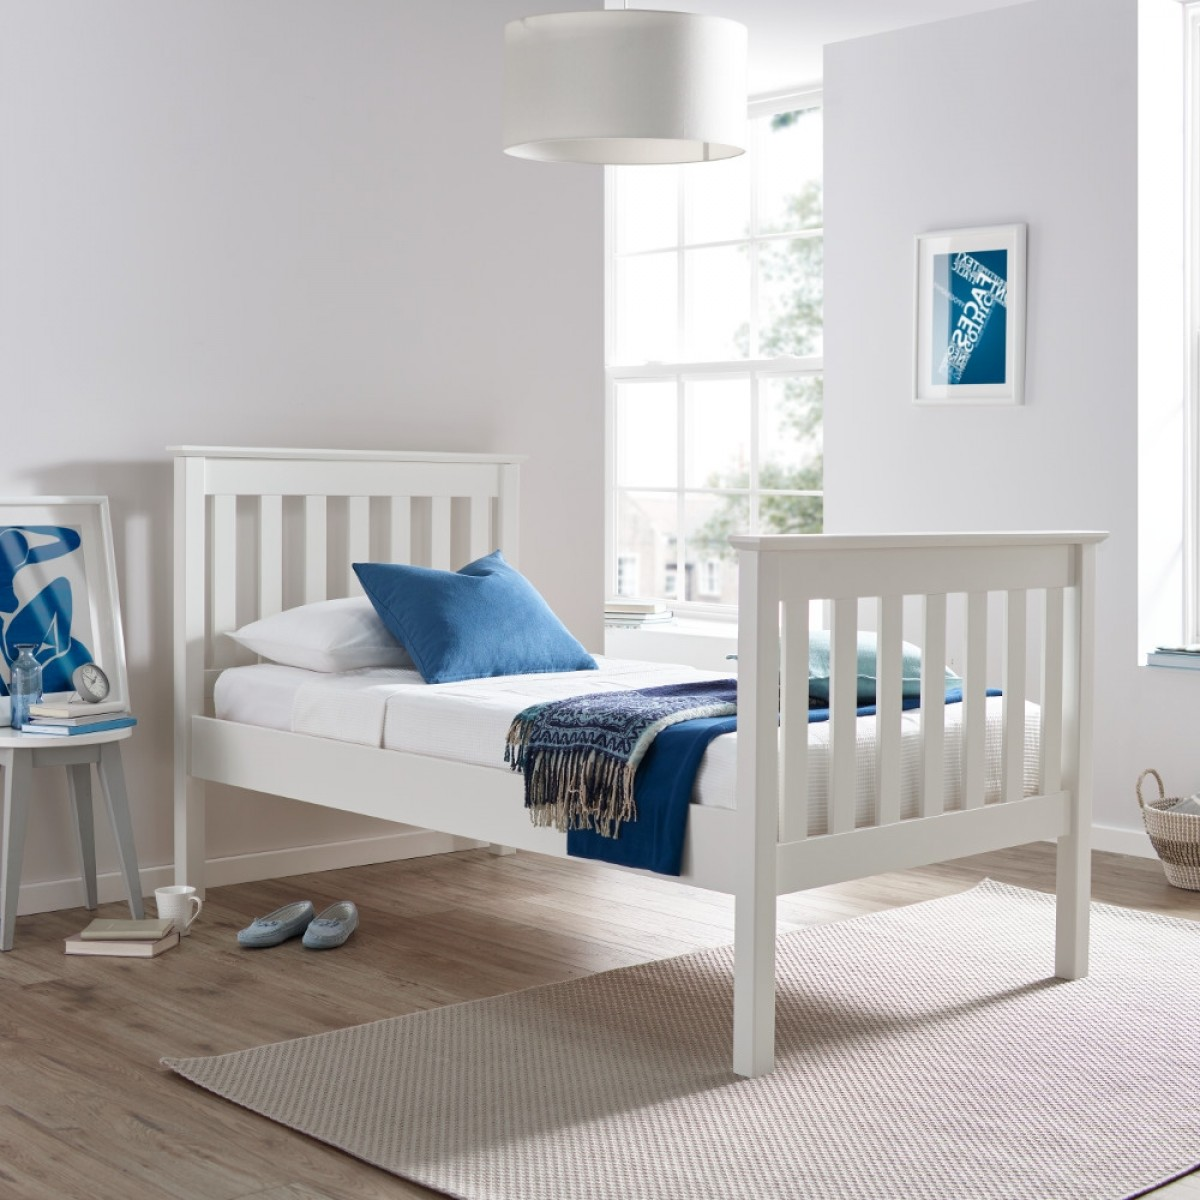 Lisbon White Finish Solid Pine Wooden High Foot End Bed